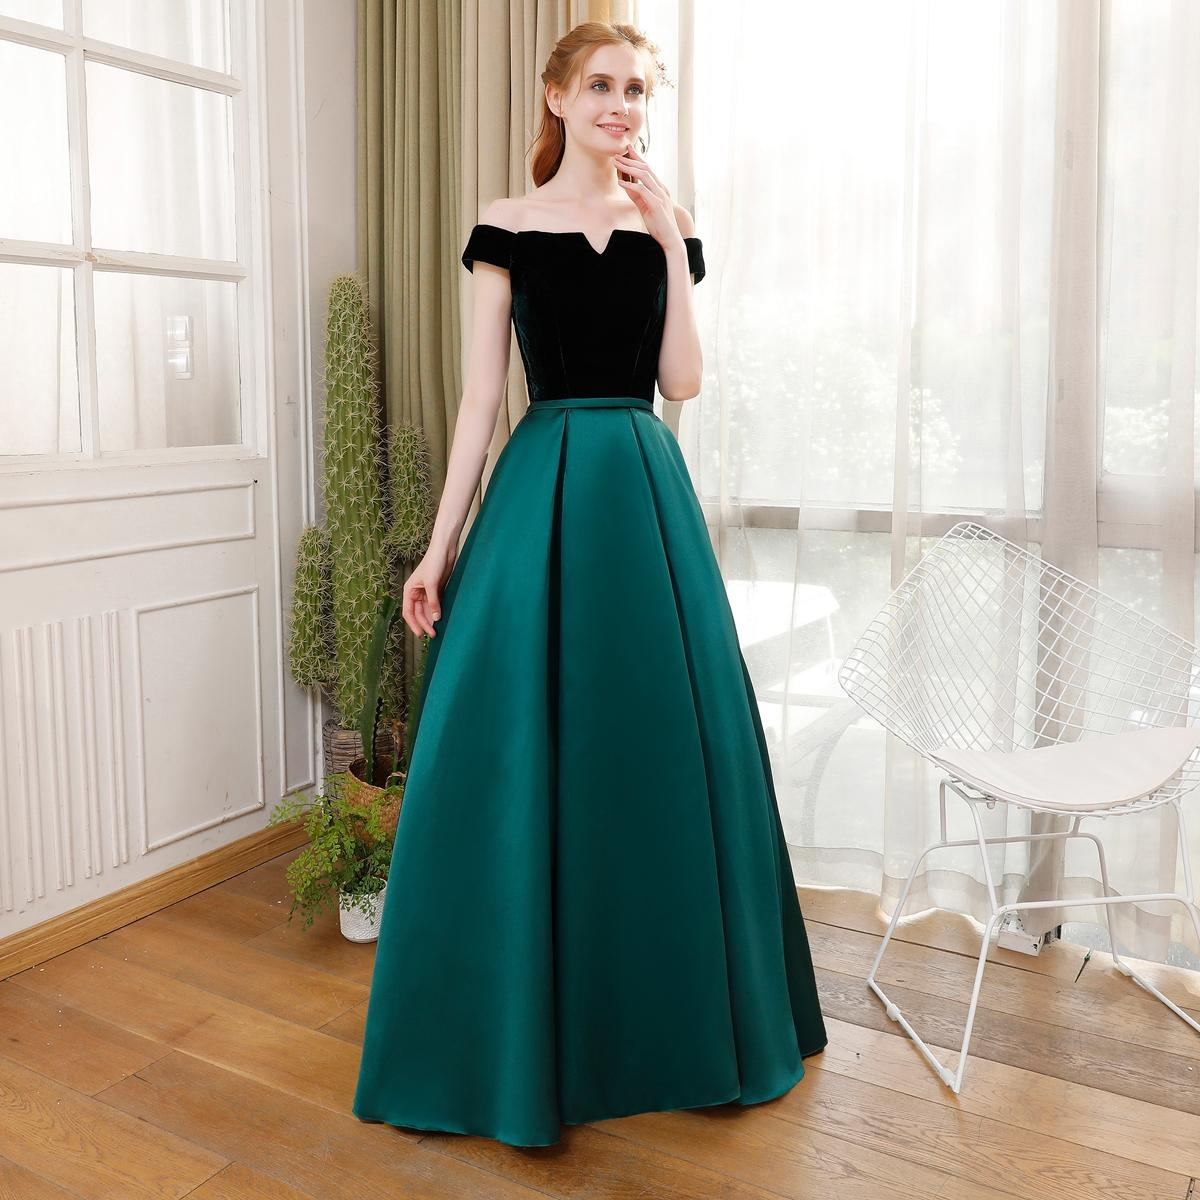 fashion banquet simple elegant evening dress bride boat neck velvet with satin vintage long prom formal gown robe de soiree plus size bolero jackets for